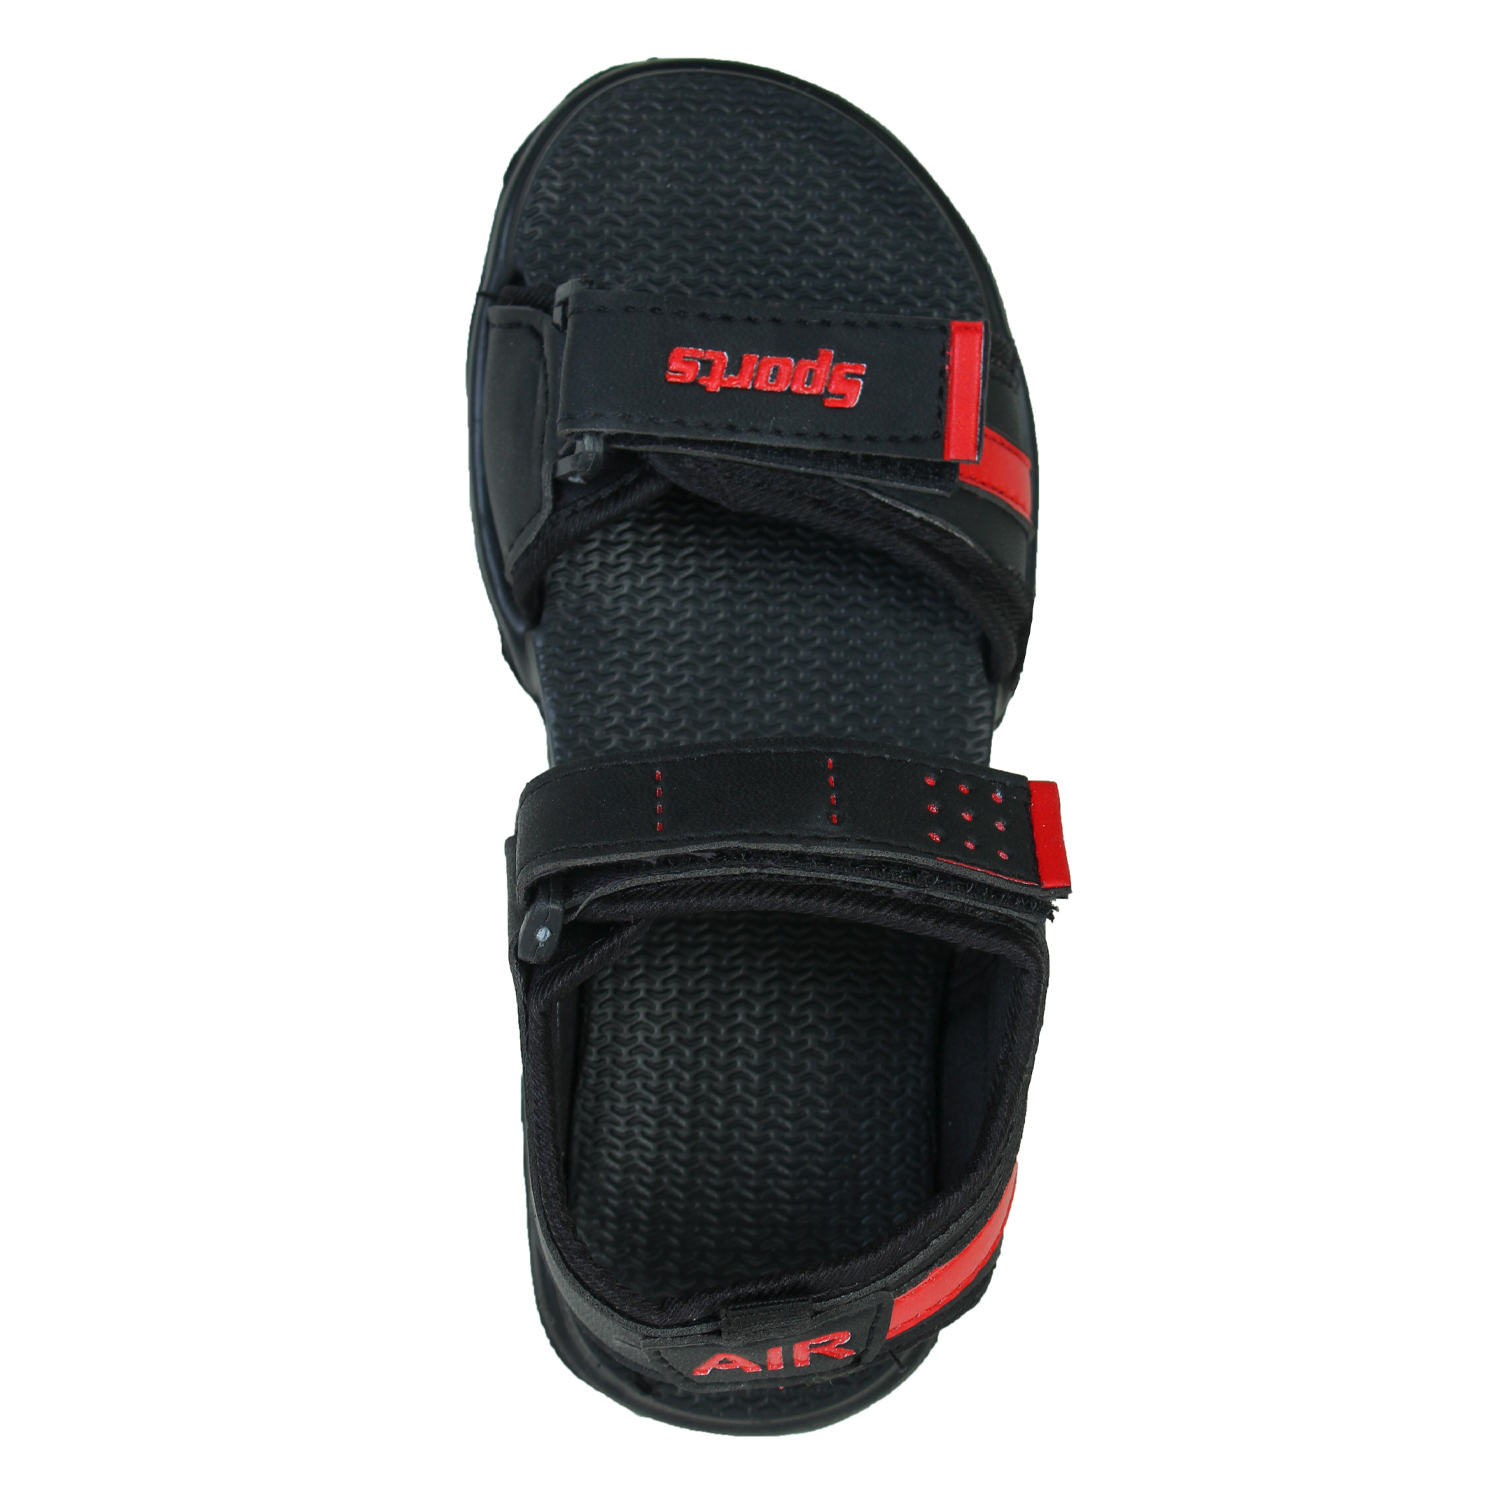 Foot Trends Rascal 2 BK RD Stylish & Trendy Casual Sandal For Kids (1-3) (Red, 11-13, 6 PAIR)